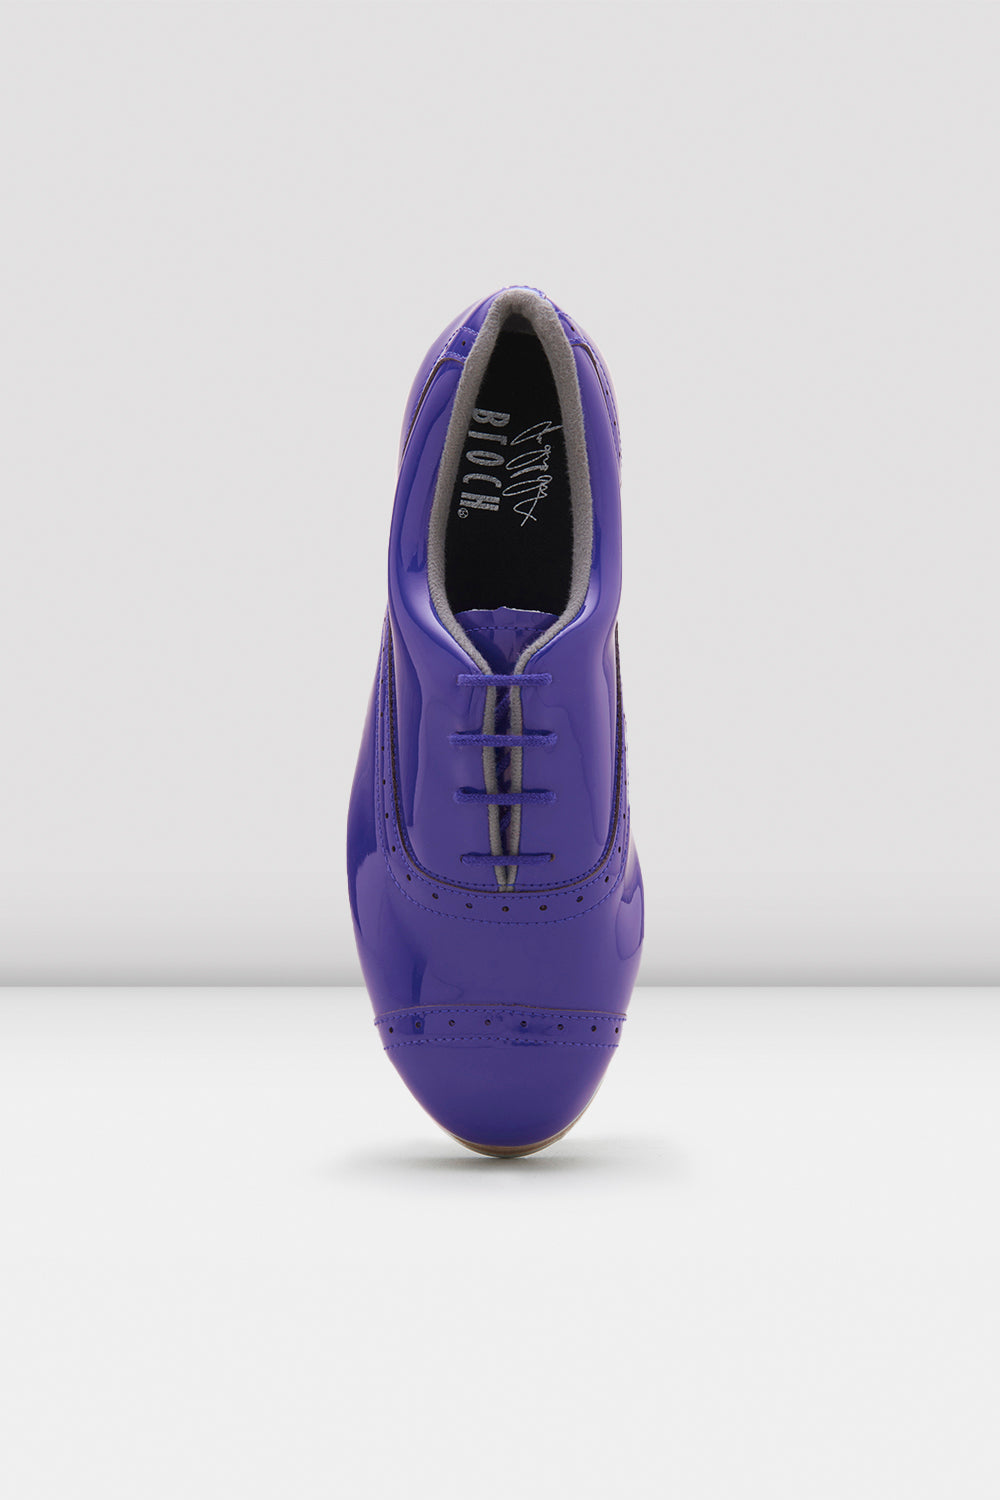 Dark blue patent Bloch Ladies Jason Samuels Smith Patent Tap Shoes single shoe focus on top of shoe